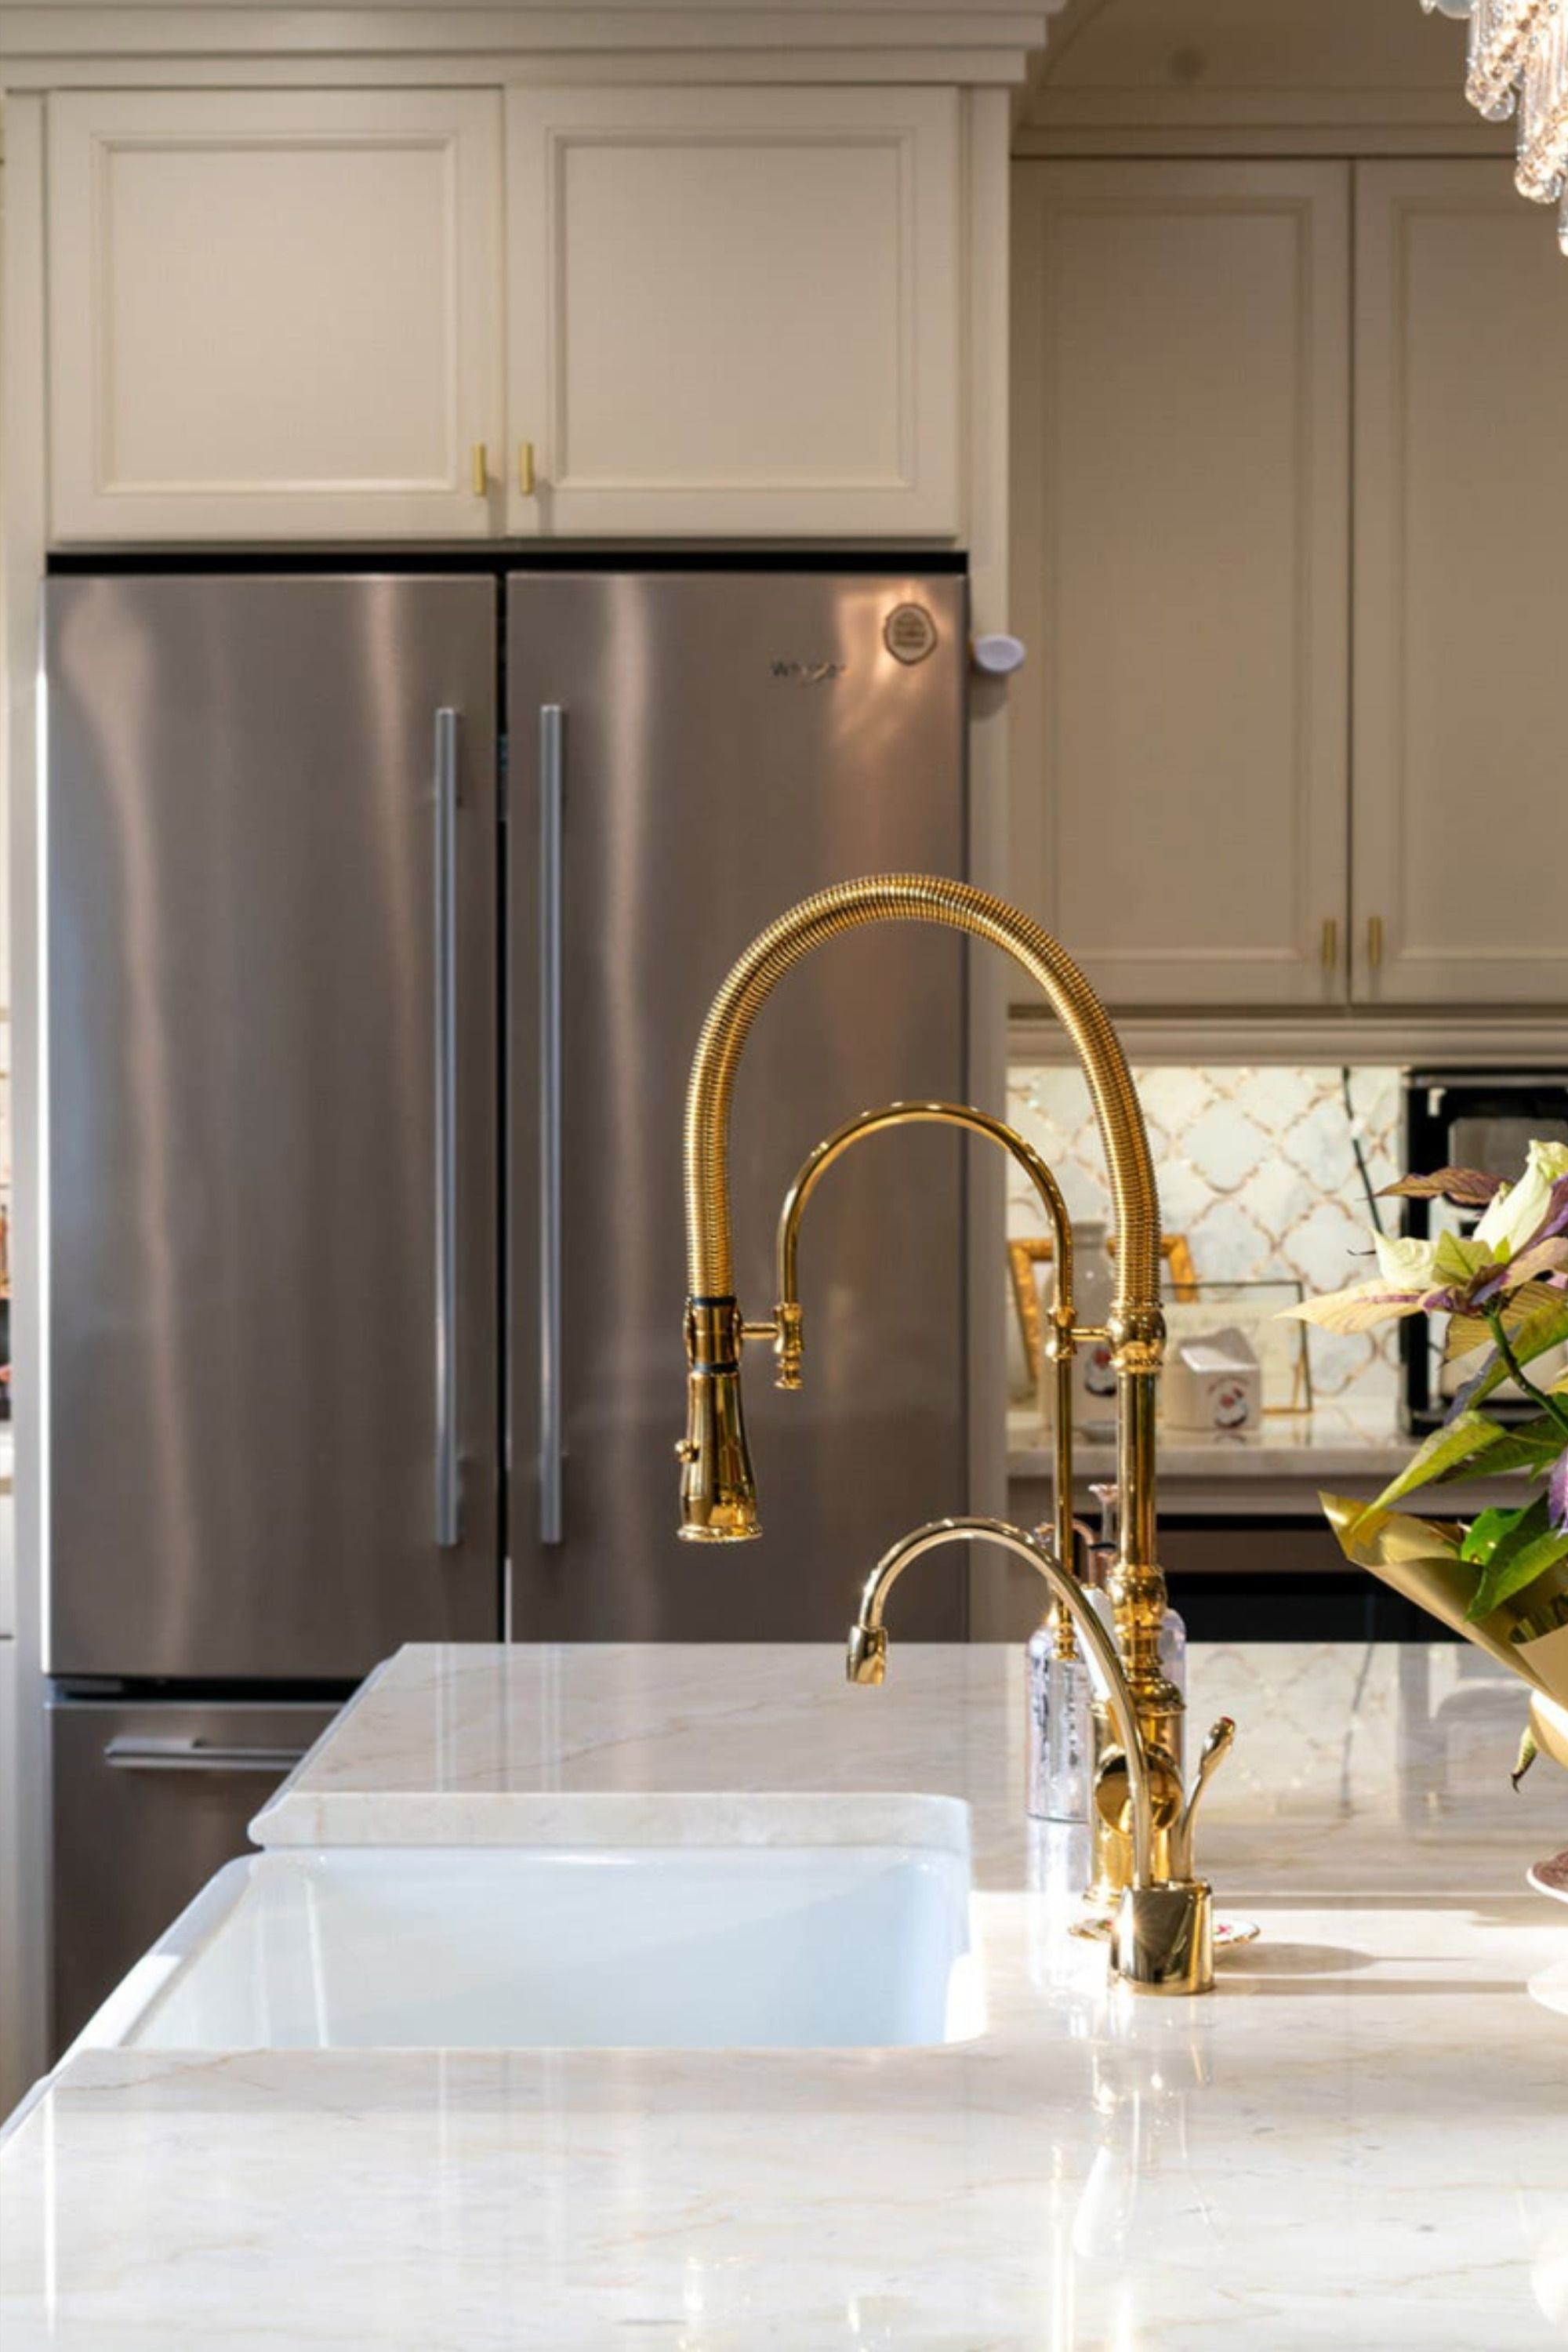 Antique White And Gold In Vintage Kitchen In 2020 White Cabinets Antique White Cabinets Kitchen Styling